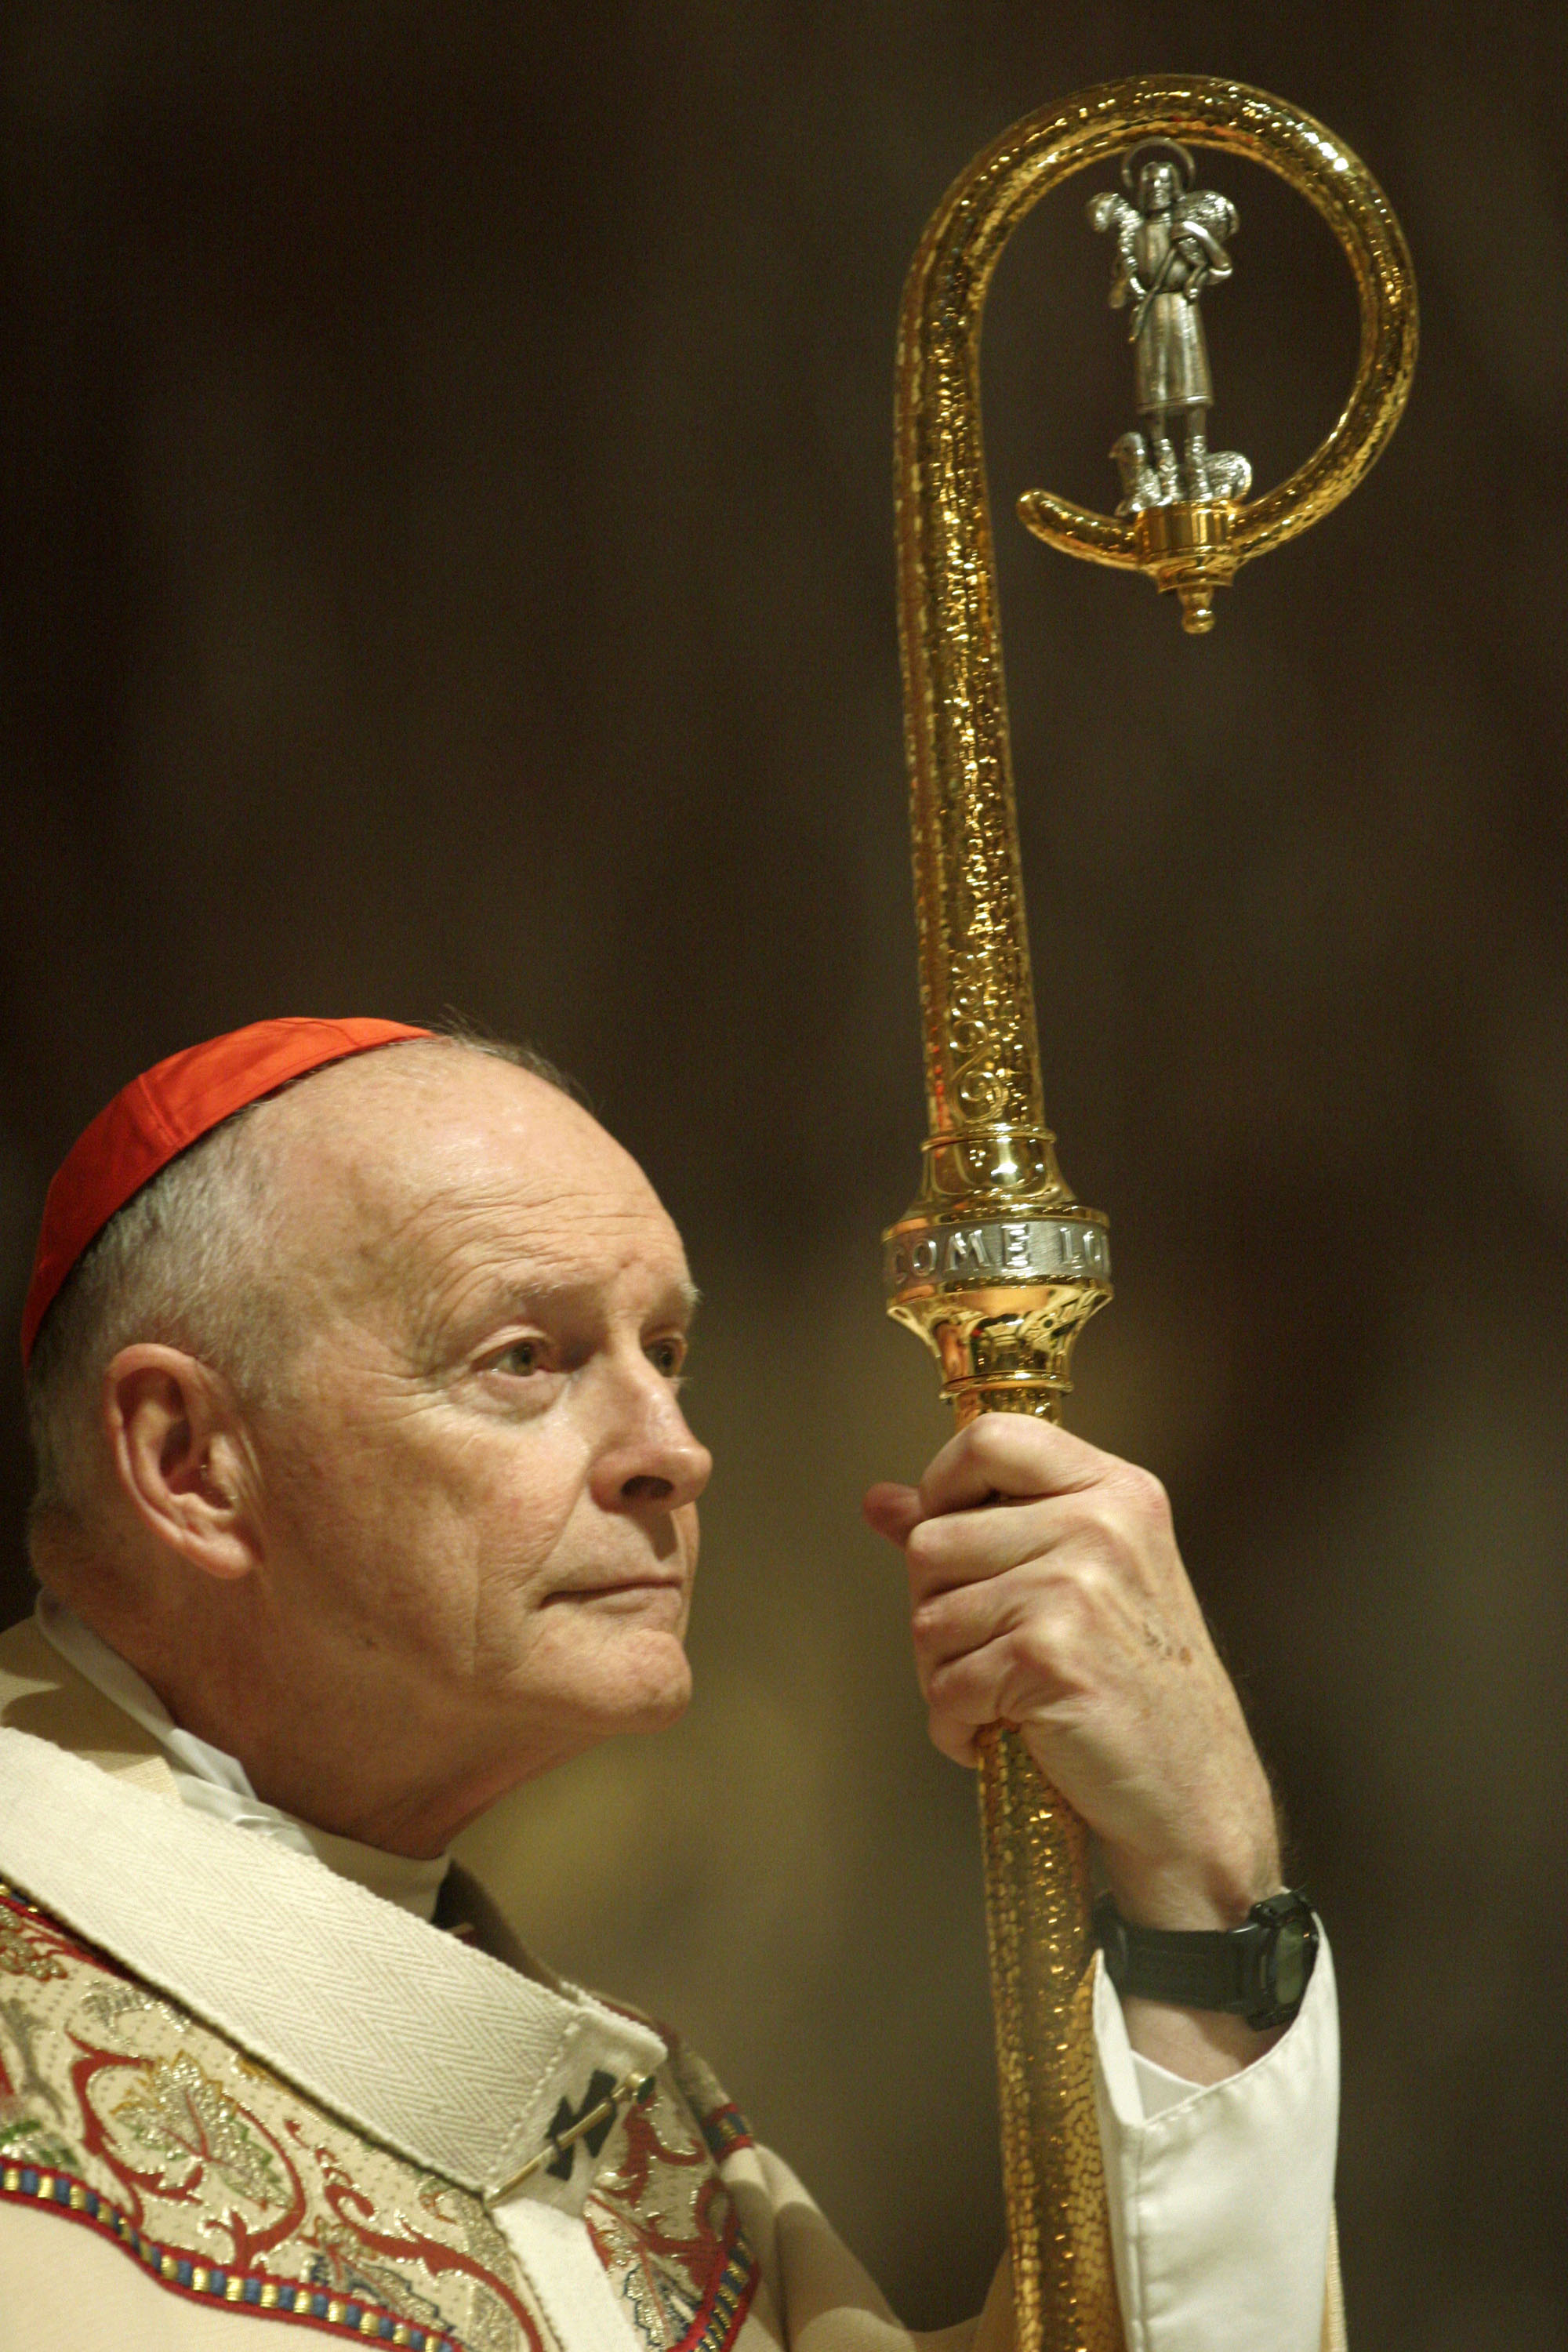 Cardinal Theodore McCarrick, Archbishop of Washington, listens to a reading at the Cathedral of St. Matthew on March 24, 2005 in Washington, D.C. McCarrick also performed a foot-washing as part of Holy Week celebrations.